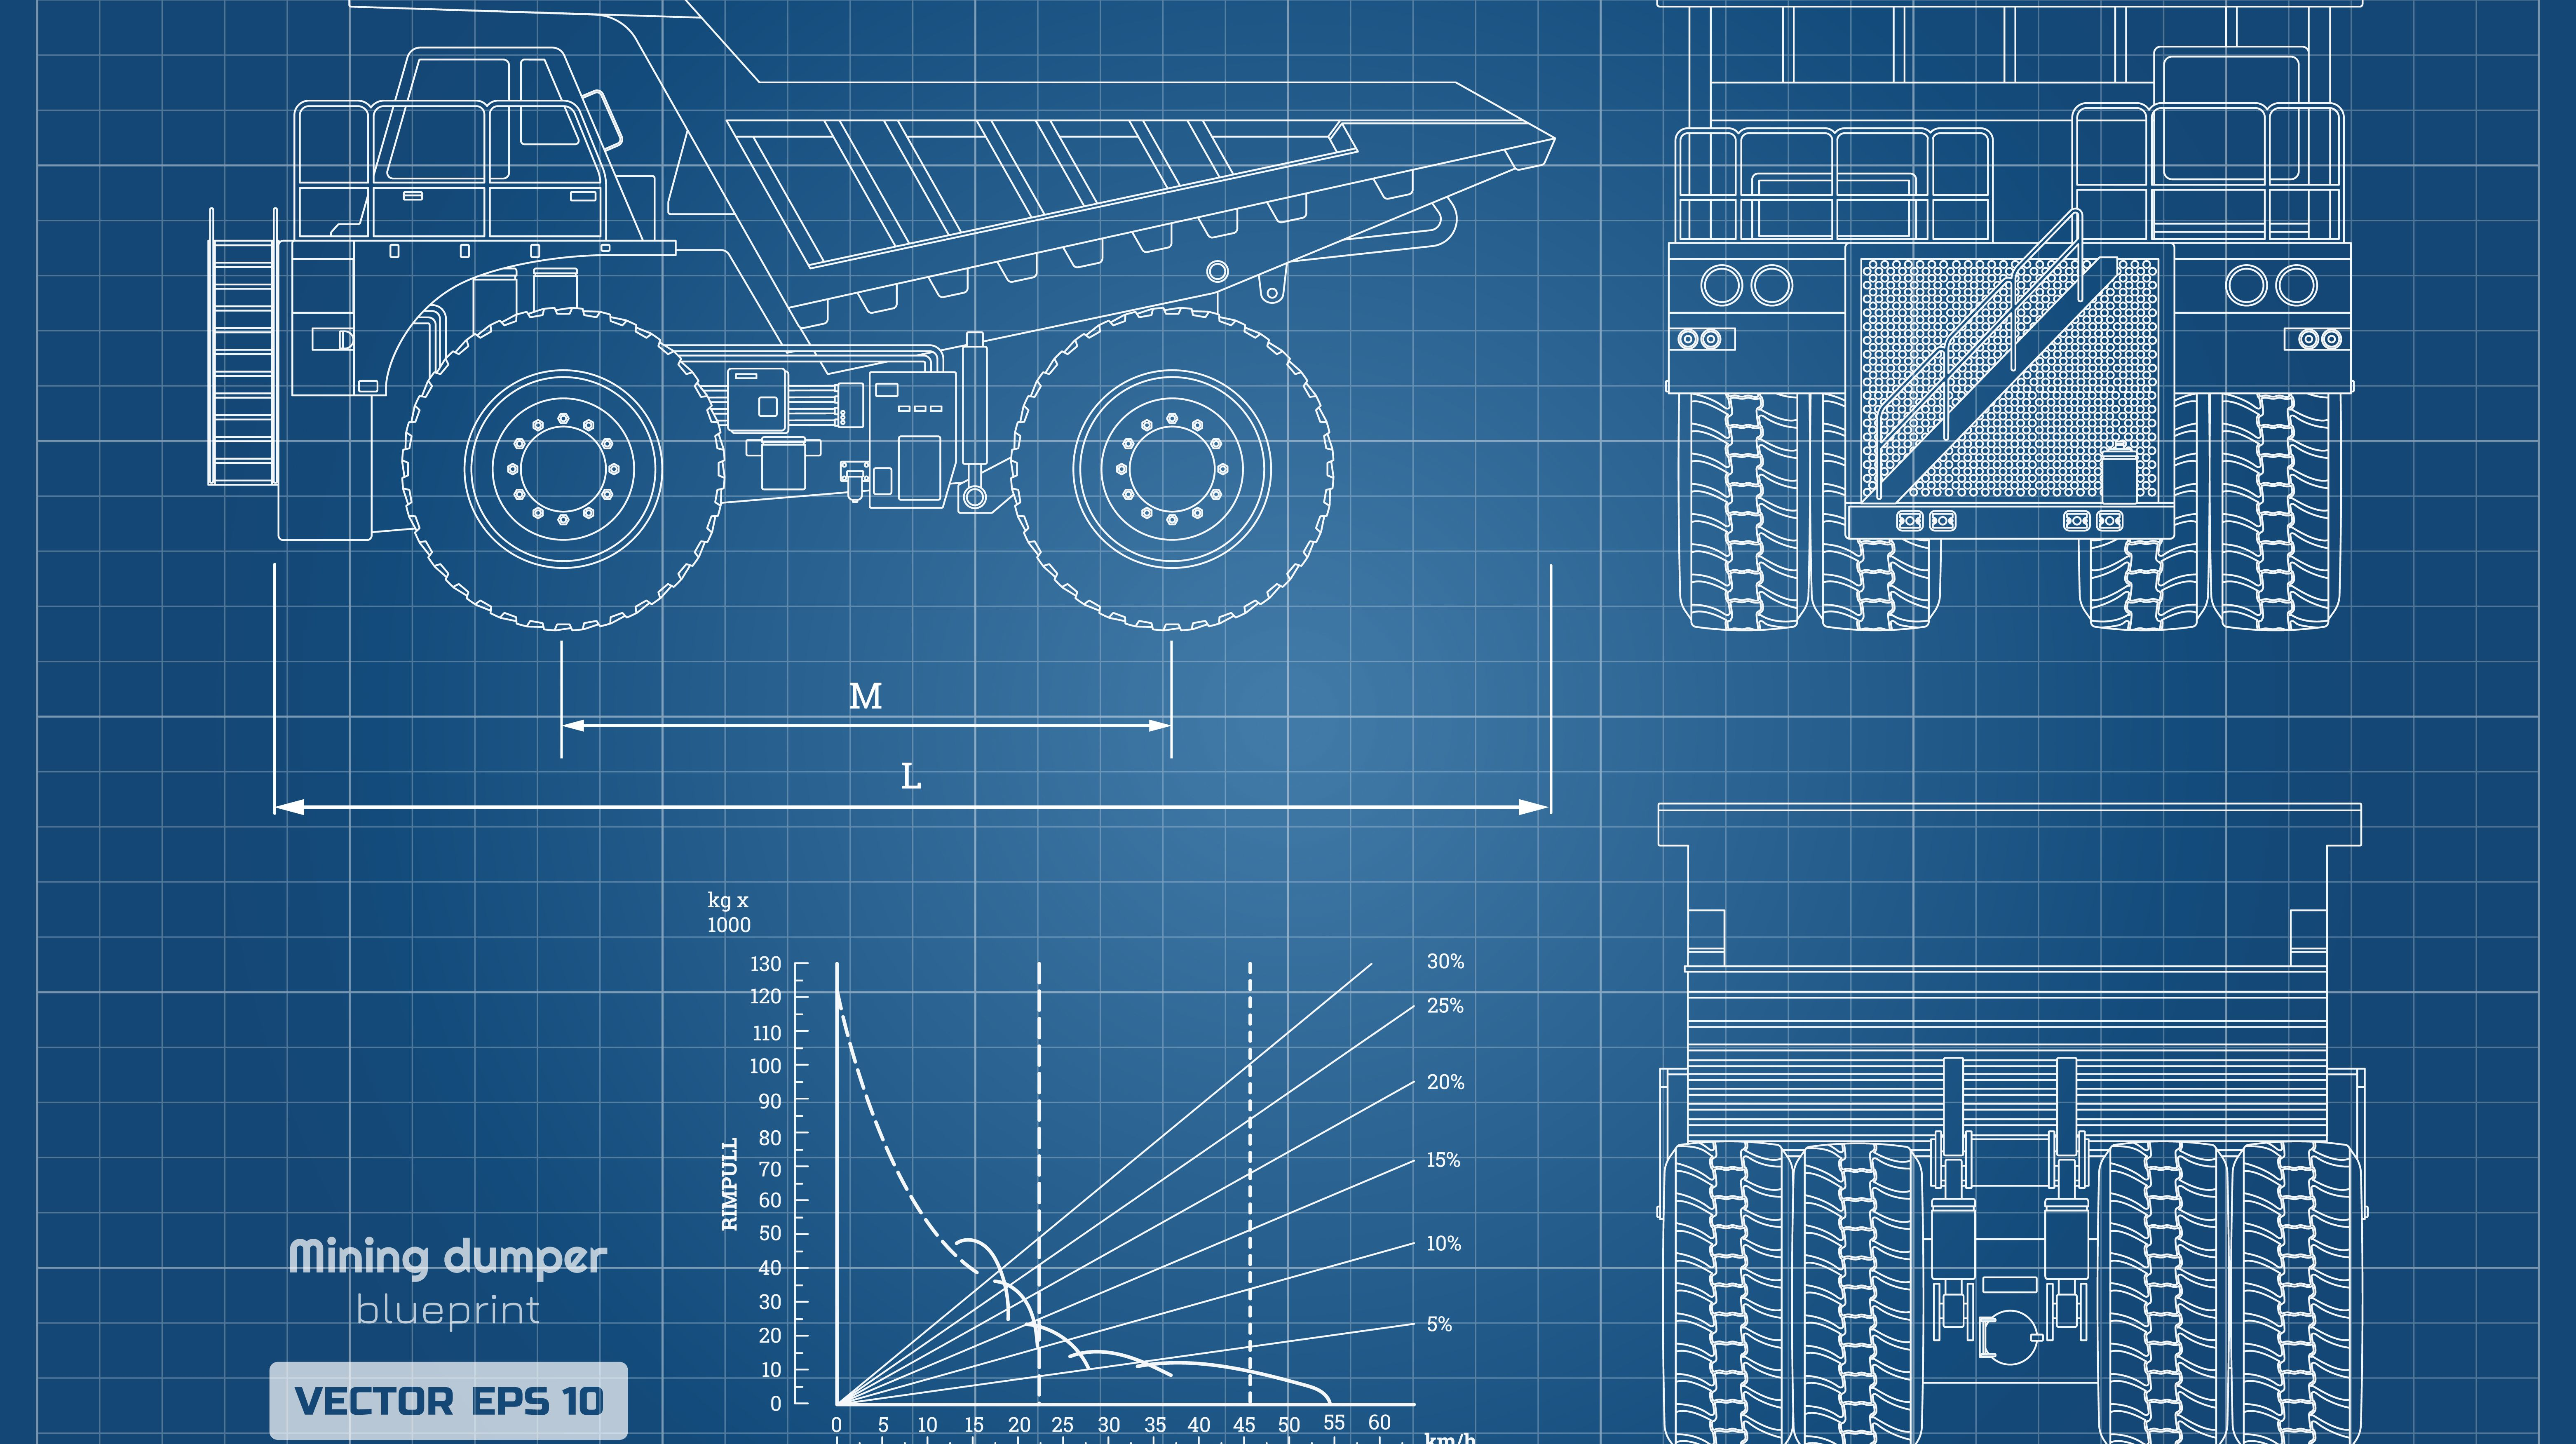 [GJFJ_338]  Why Are Blueprints Blue? | Mental Floss | Architectural Engineering Schematics |  | Mental Floss